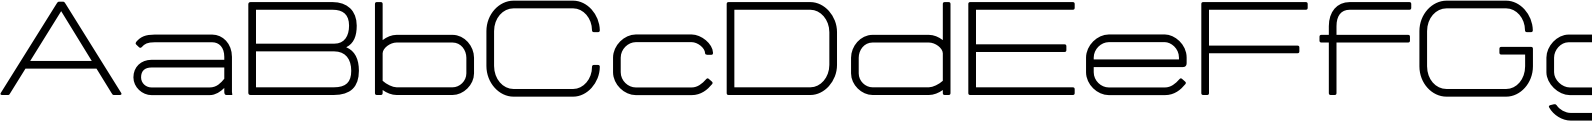 Manifold CF Extended Font